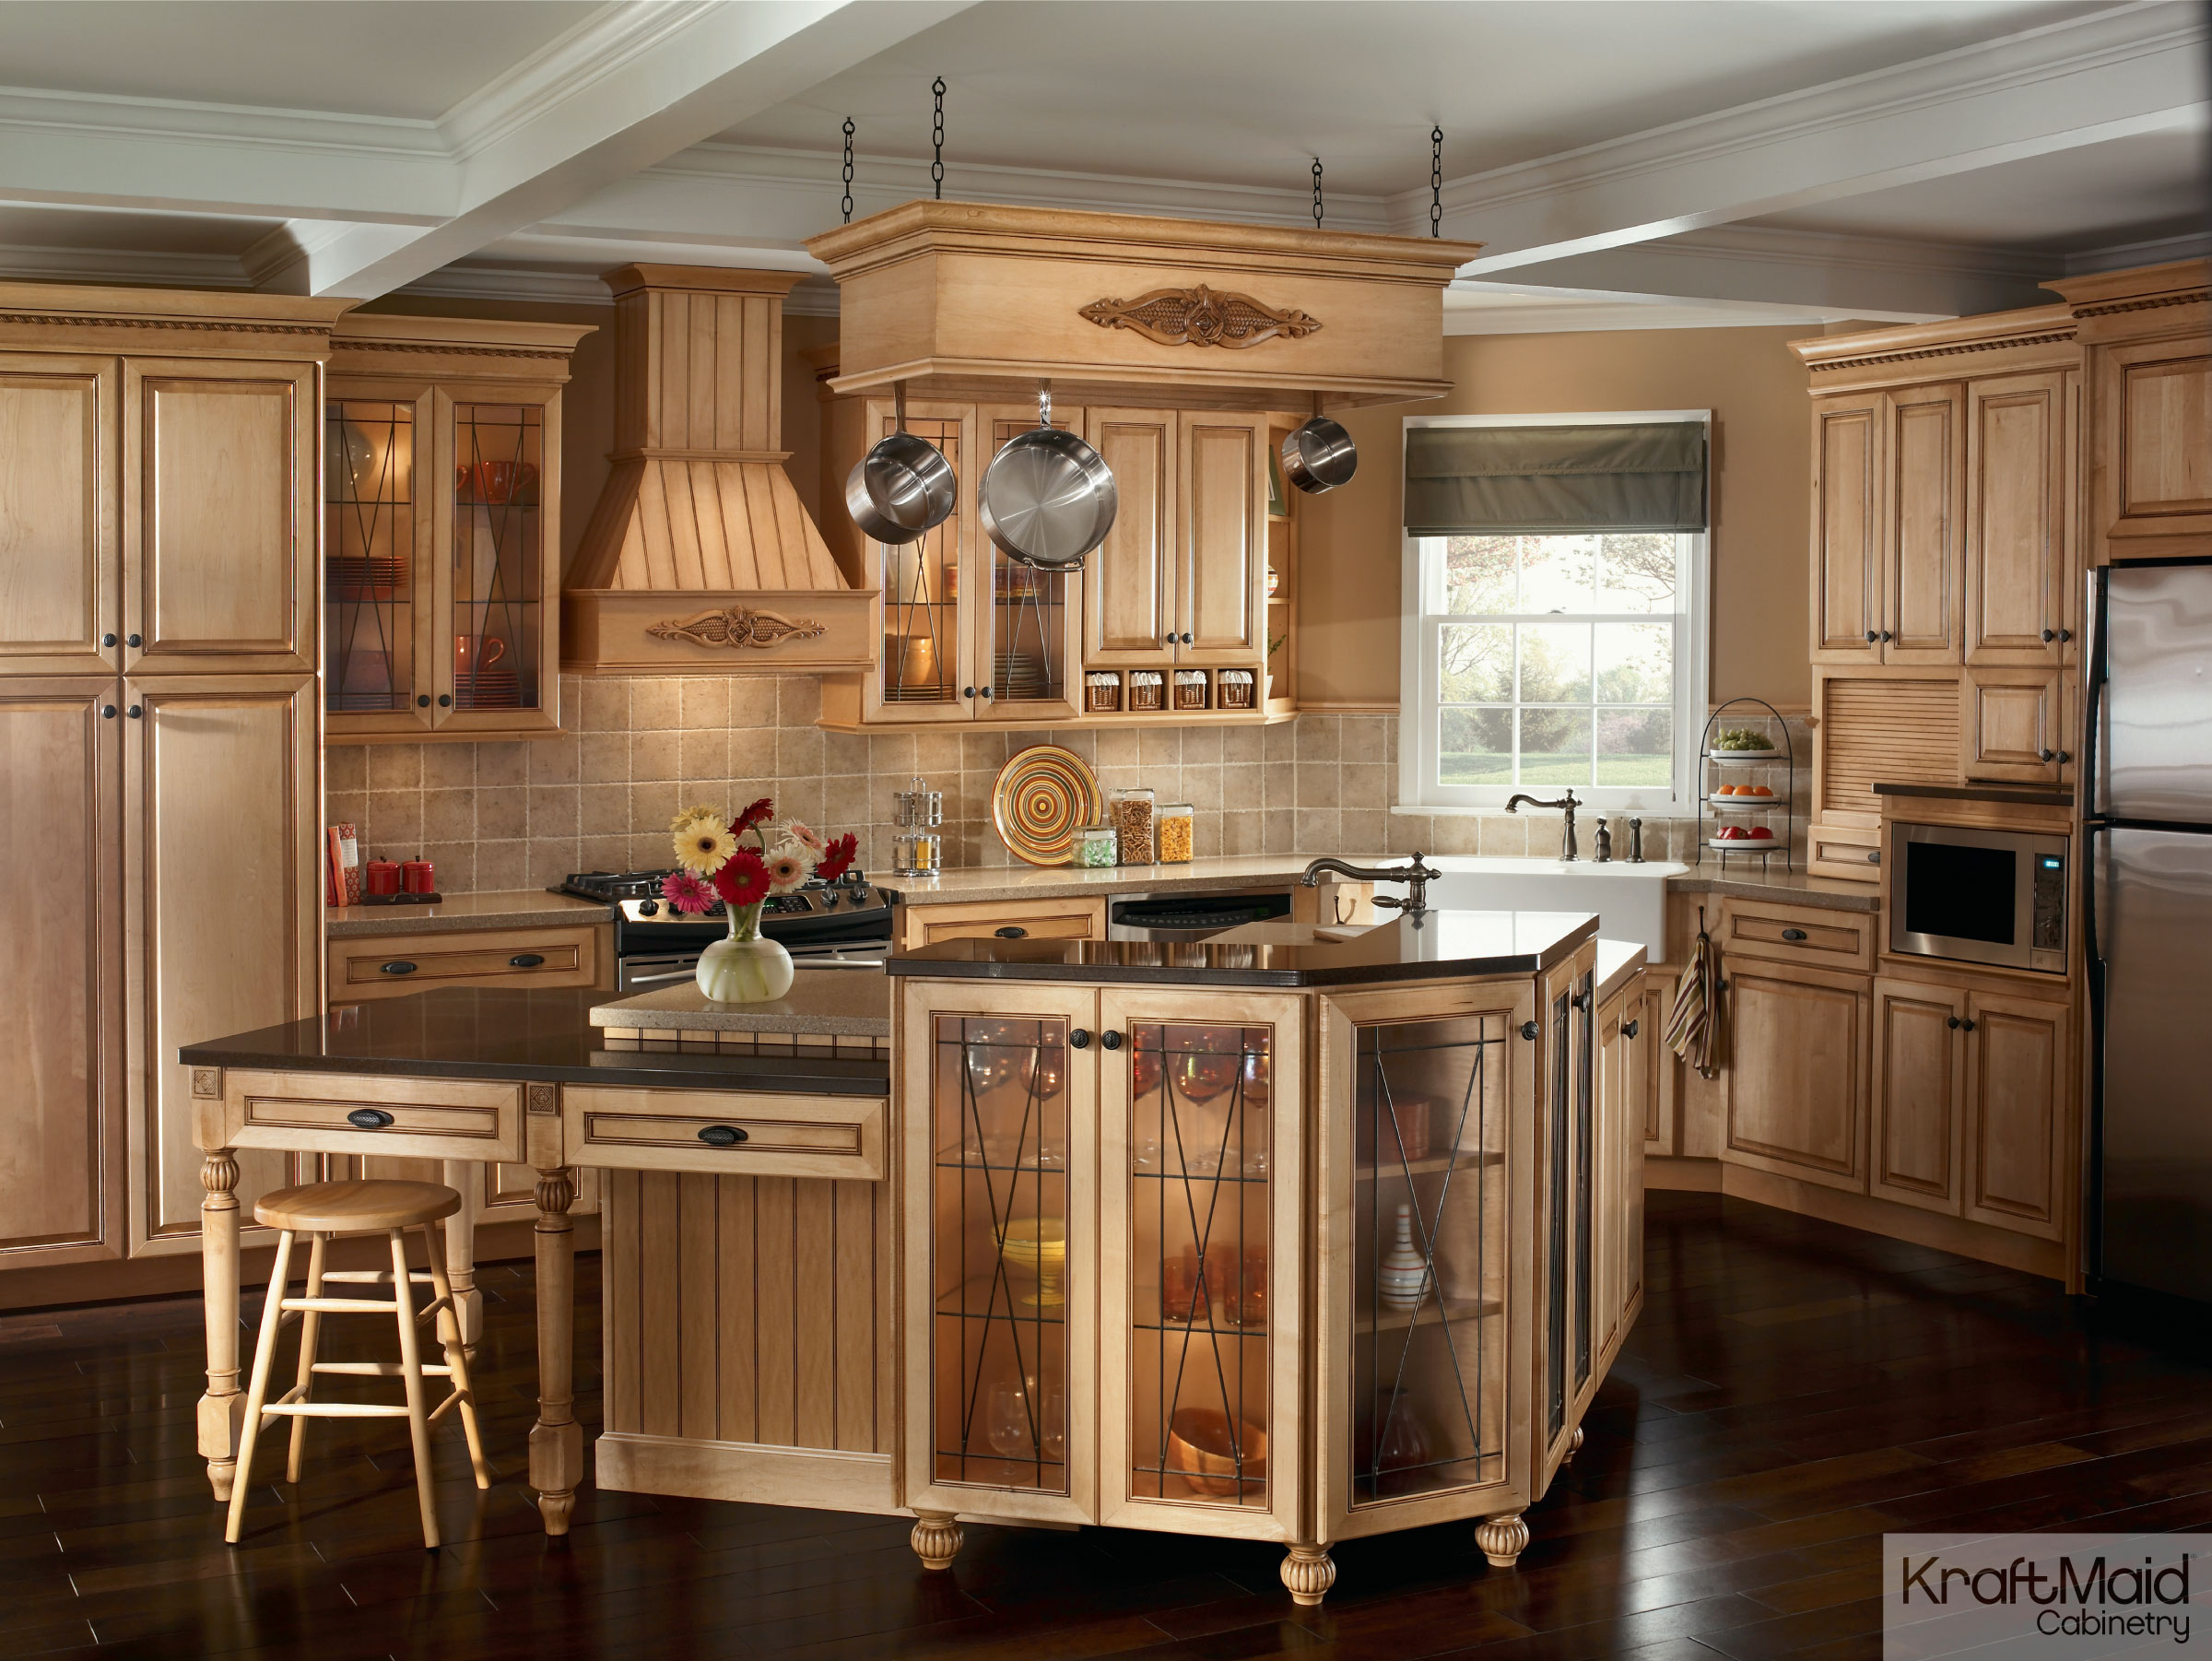 17-best-images-about-kitchens-classically-traditional-on.jpg